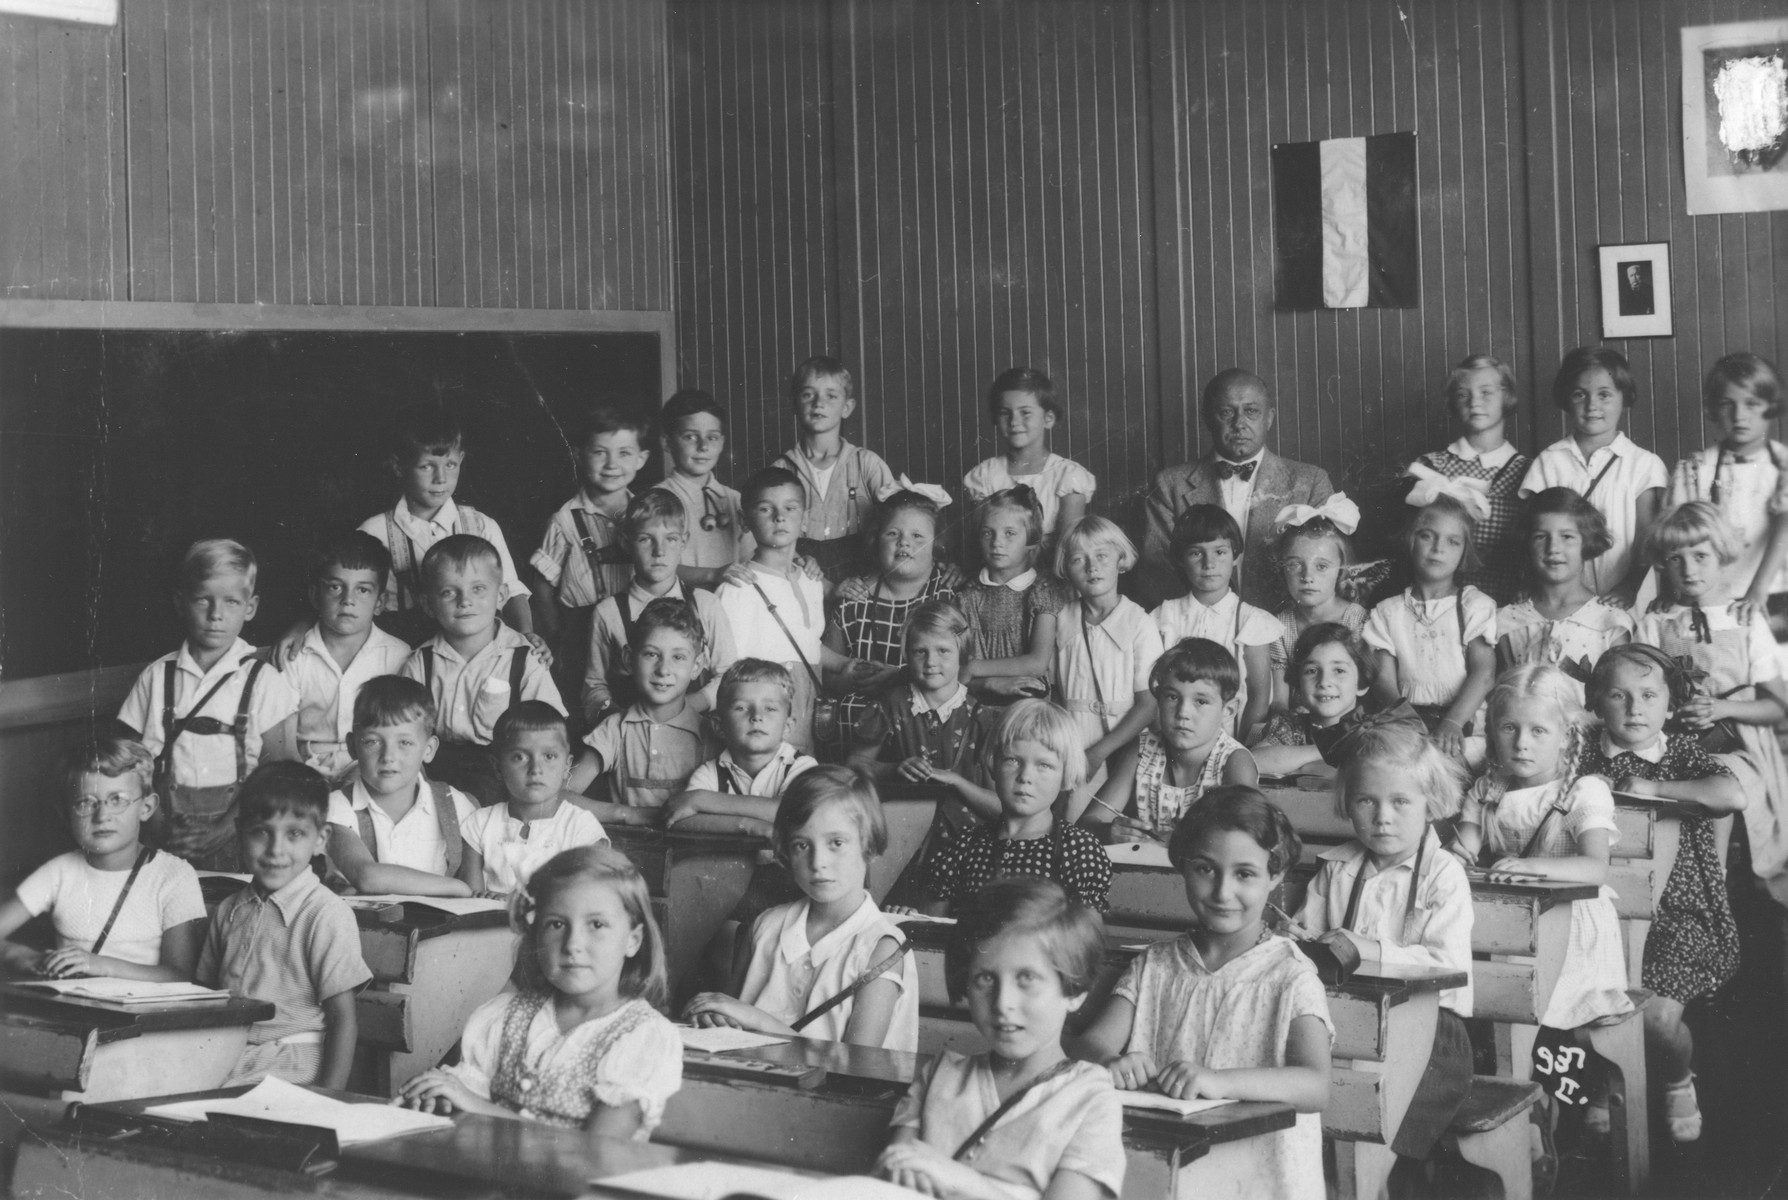 Children sit at their desks in a school in the Templehof neighborhood of Berlin.  Among those pictured is Paul Oppenheimer (third row, second from the left), the only Jewish child in the school.  A portrait of Hitler hanging on the wall was later rubbed out by the donor.